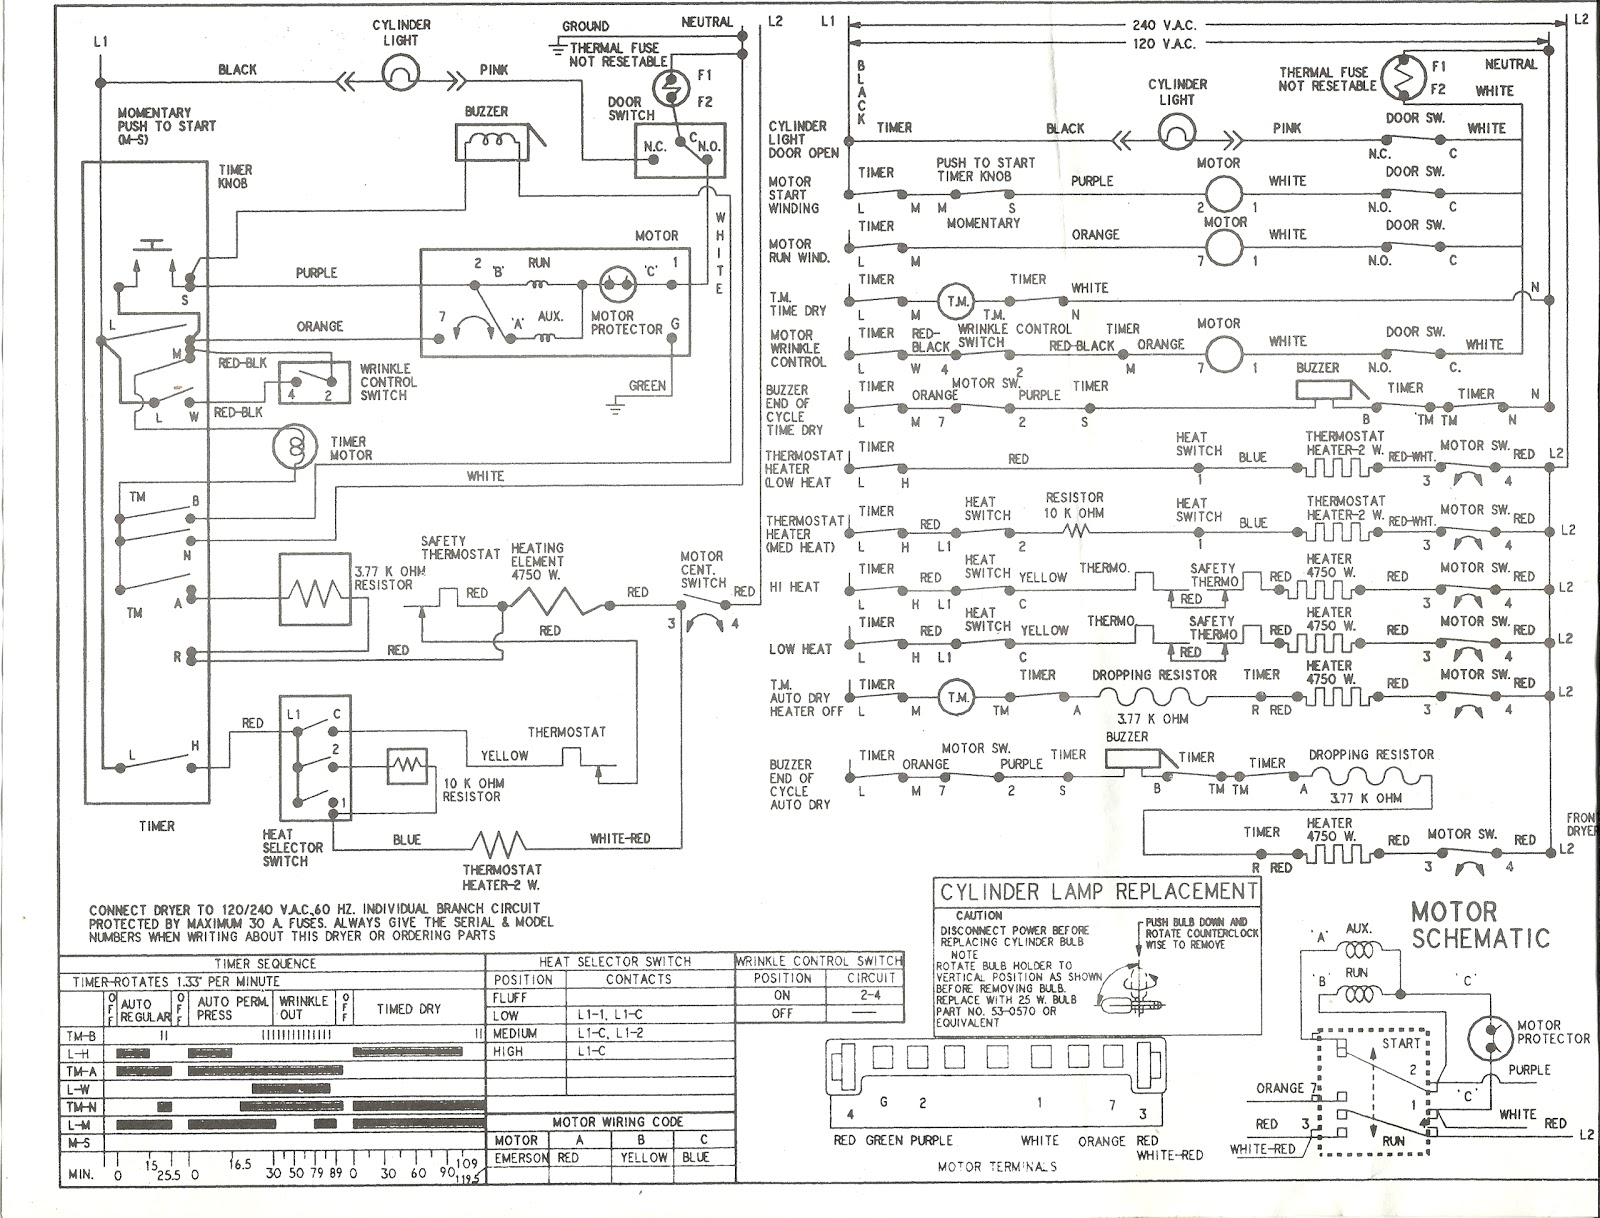 appliance talk kenmore series electric dryer wiring diagram schematic rh blog applianceoutletservice com Sears Kenmore Free Diagrams kenmore refrigerator compressor relay wiring diagram